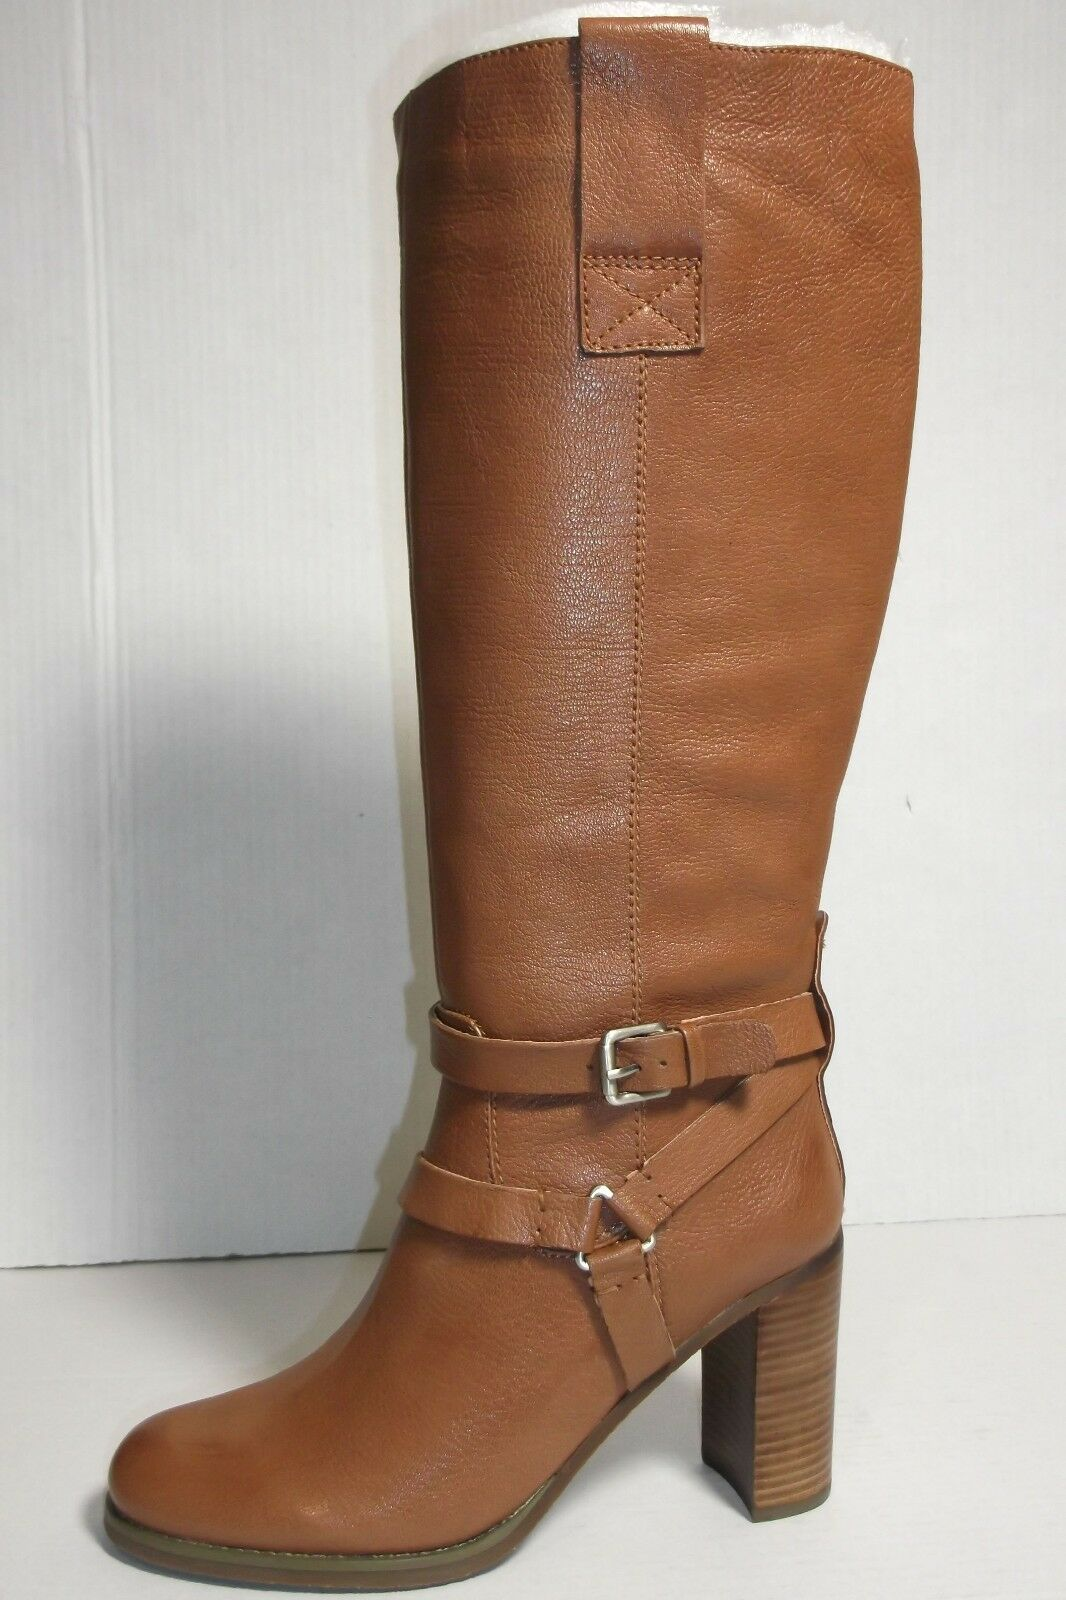 BANDOLINO BDAISEL WOMENS MEDNATURAL LEATHER  TALL BOOTS SIZE 9.5M